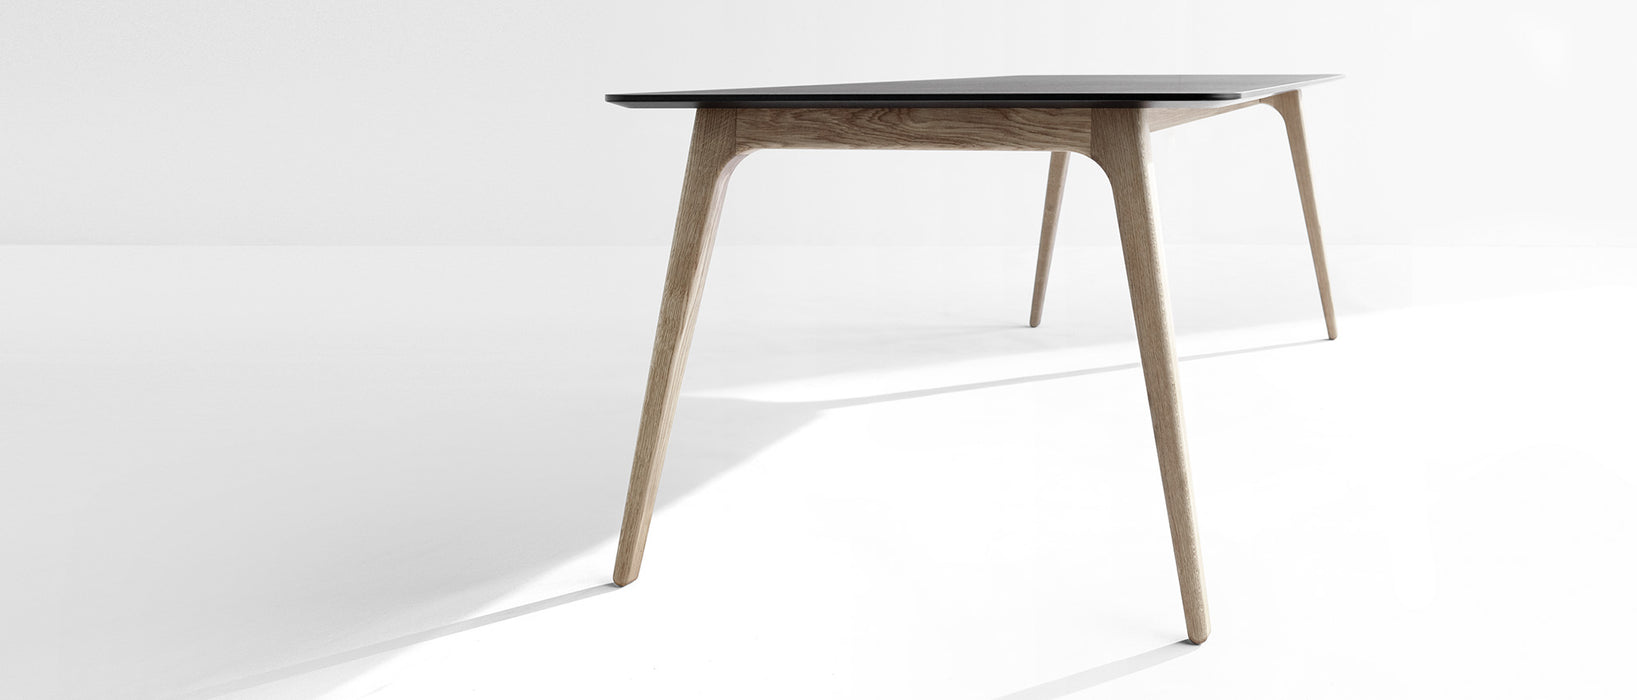 GATE Dining Table 208cm // Black Linoleum, Black Edge - Black Ash Legs